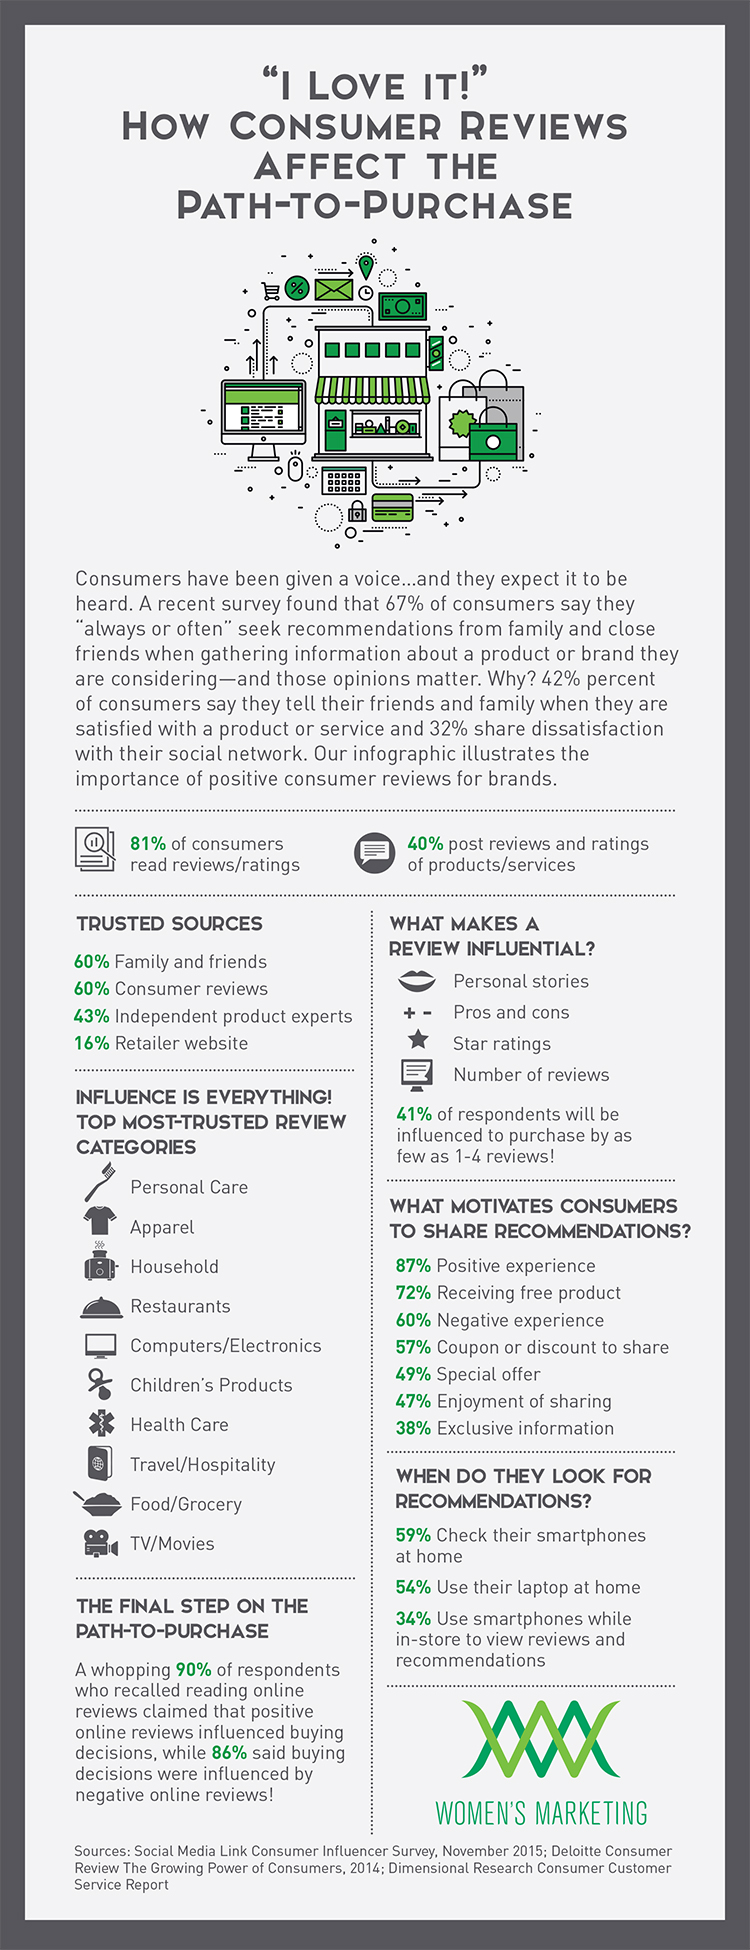 Path to Purchase - WMI Infographic